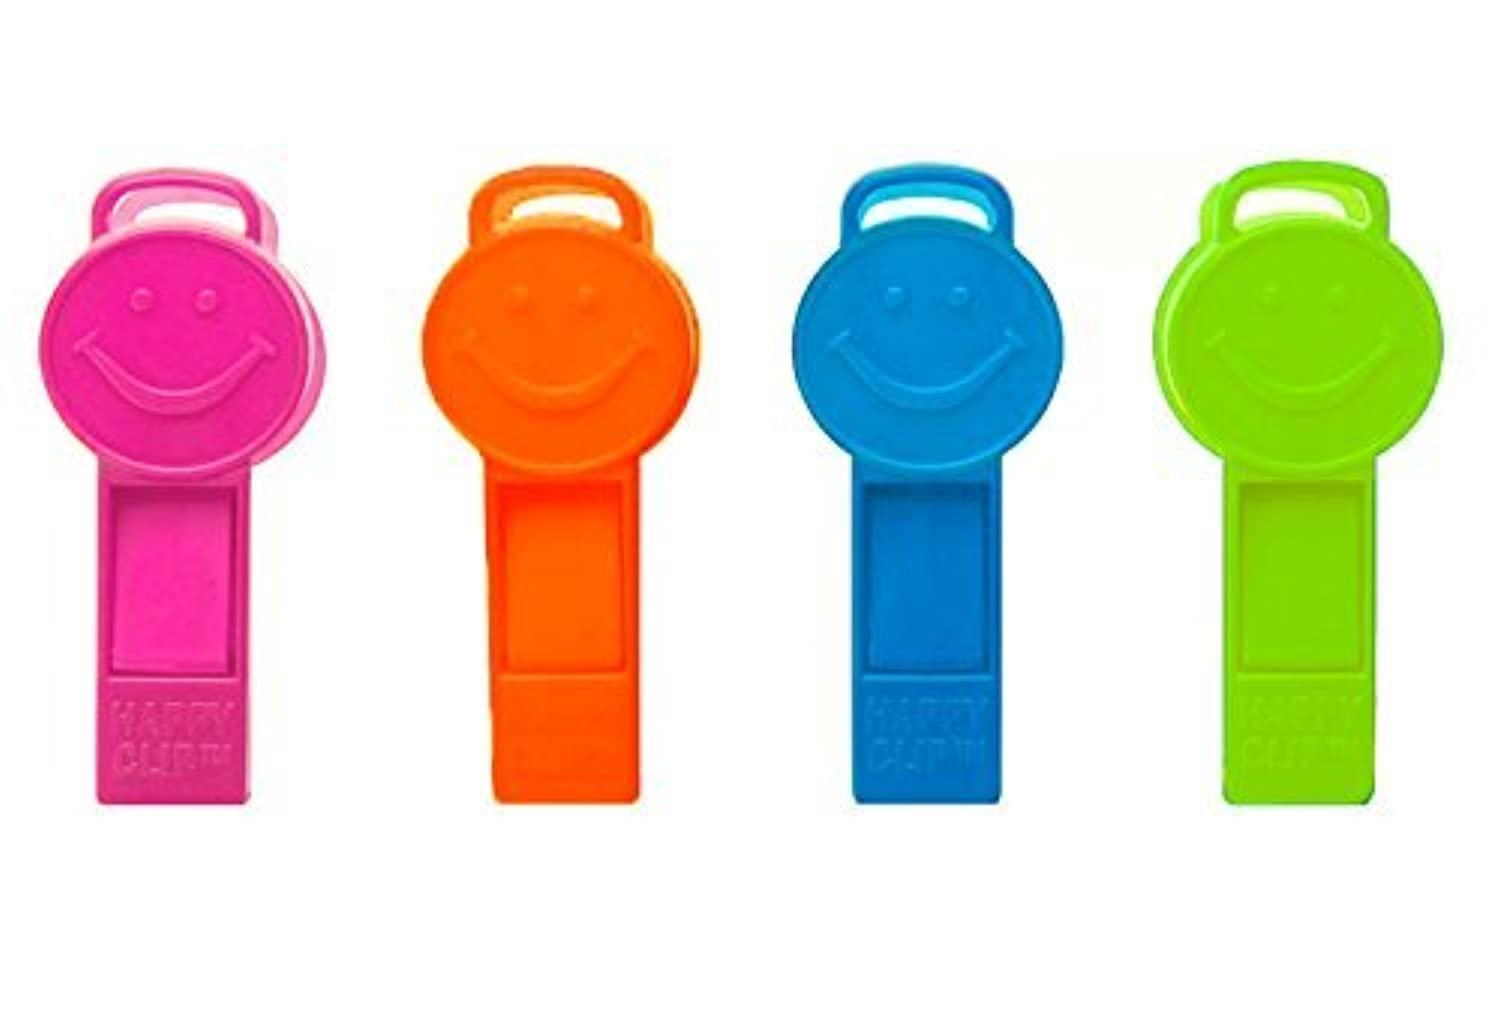 Happy Clip 9 g Weight Neon Assortment 100 ct. [並行輸入品]